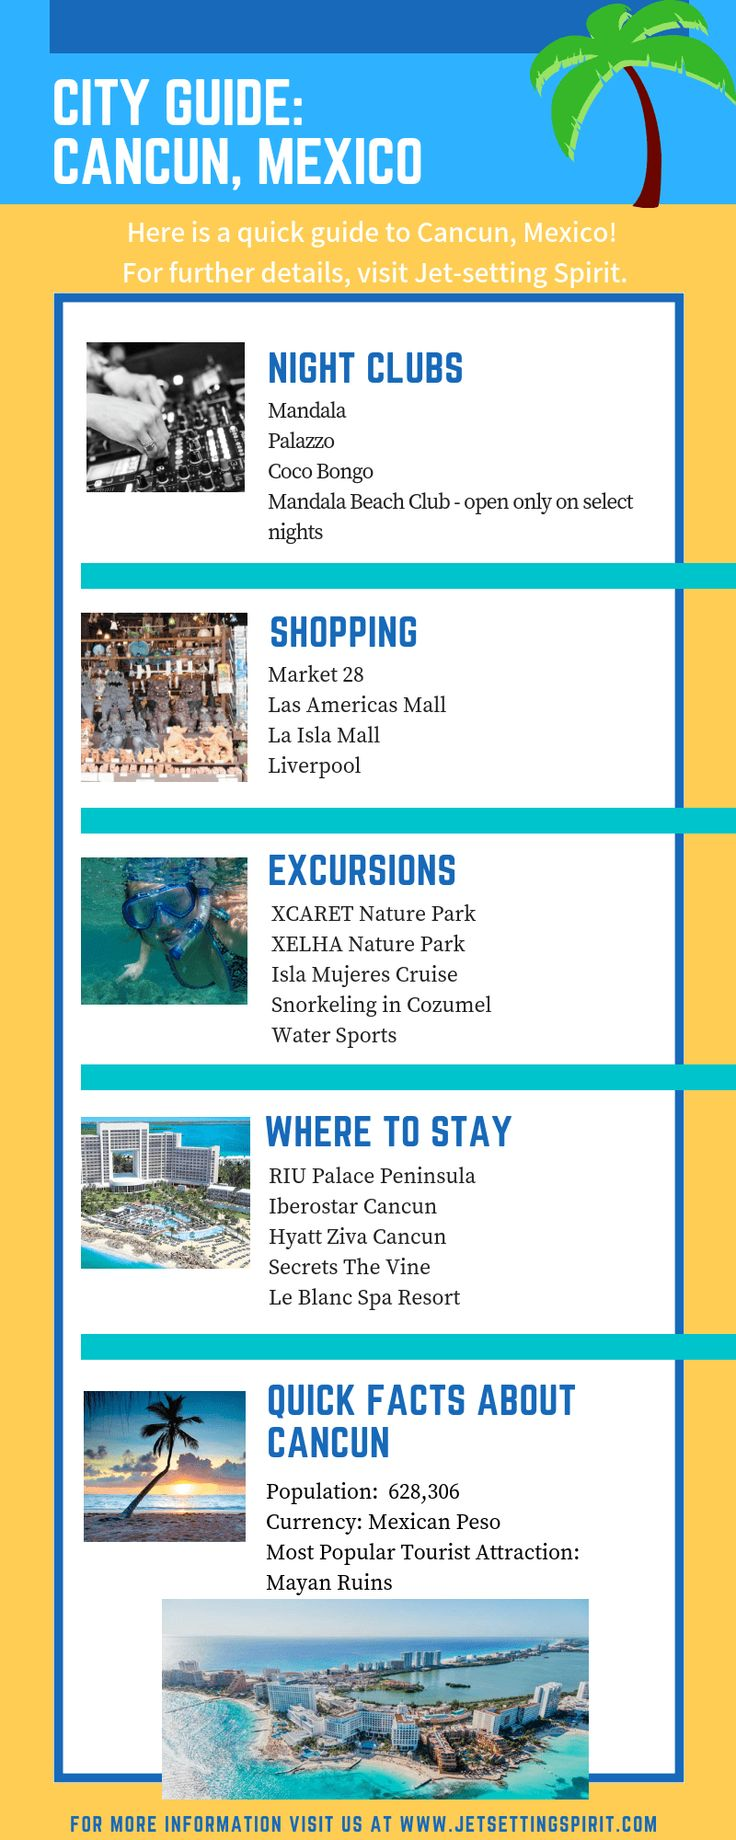 Cancun- a City Guide (Nightlife, shopping, and culture)